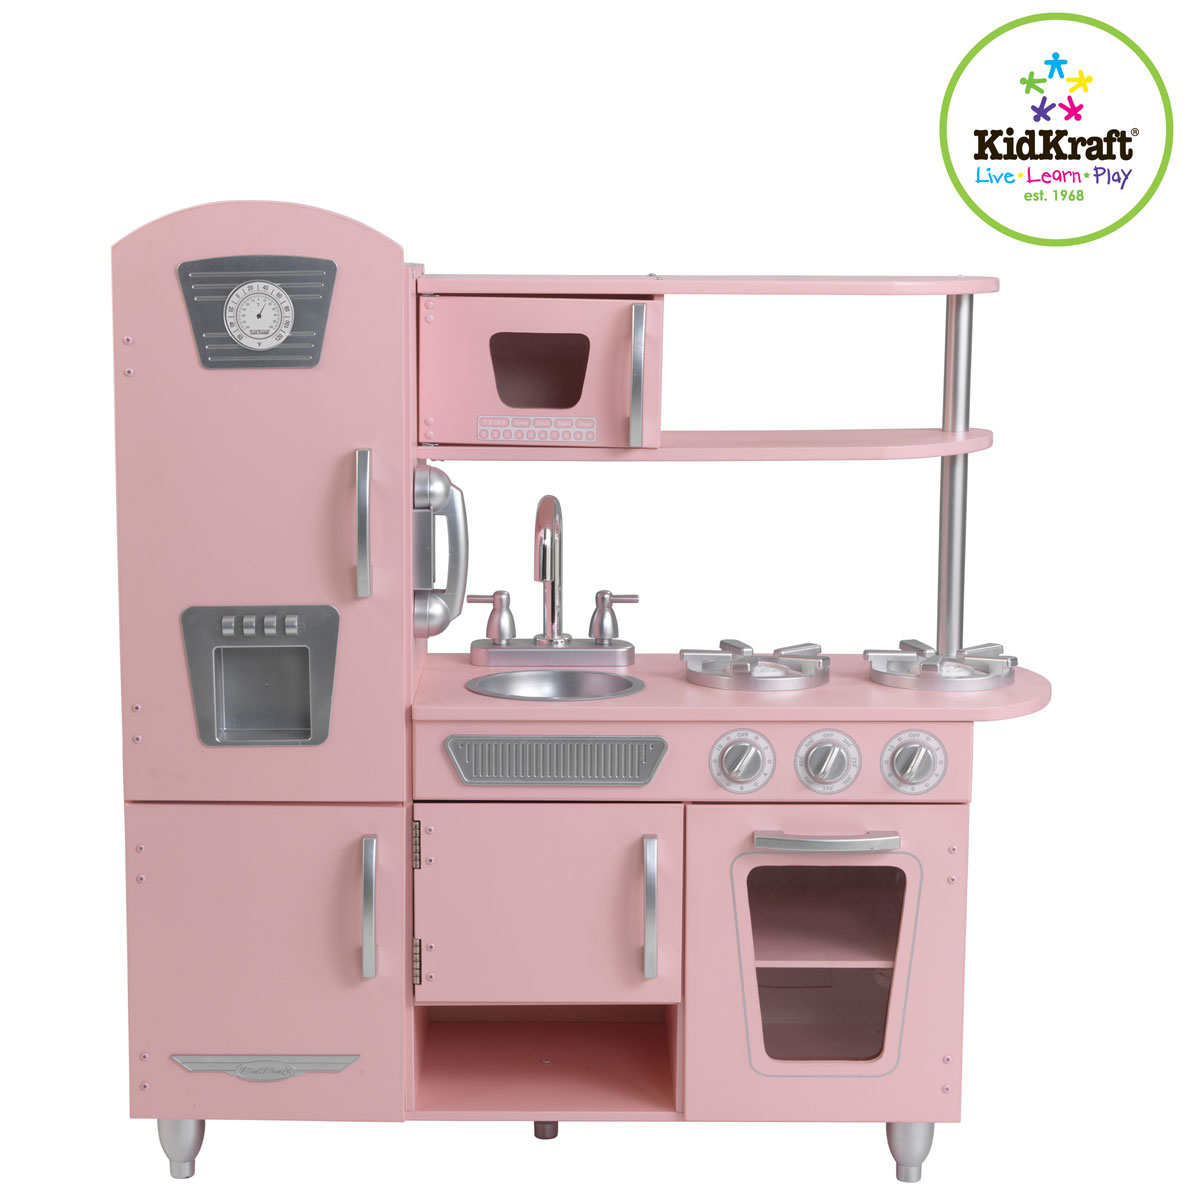 Cucine Per Bambini Kidkraft Country kitchen imaginary play for kids wooden t